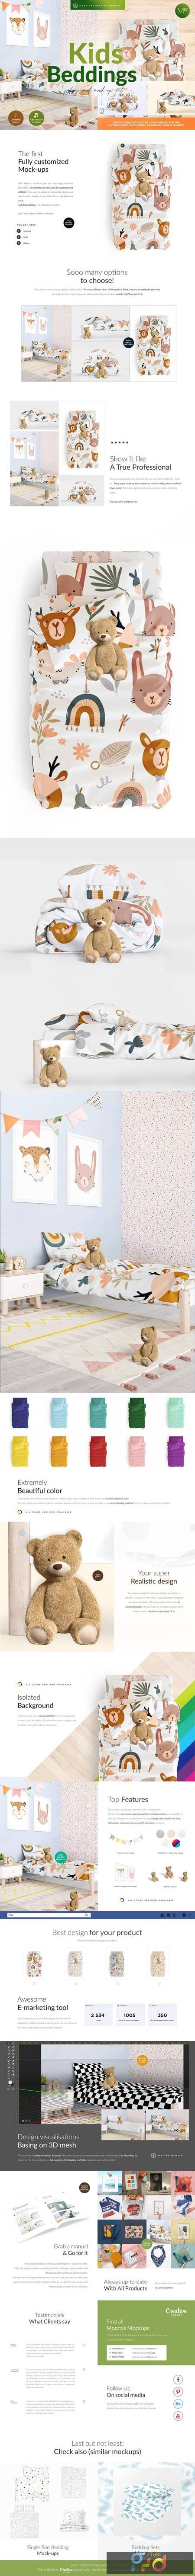 Kids Beddings Mock-ups Set on 3D 5579996 1